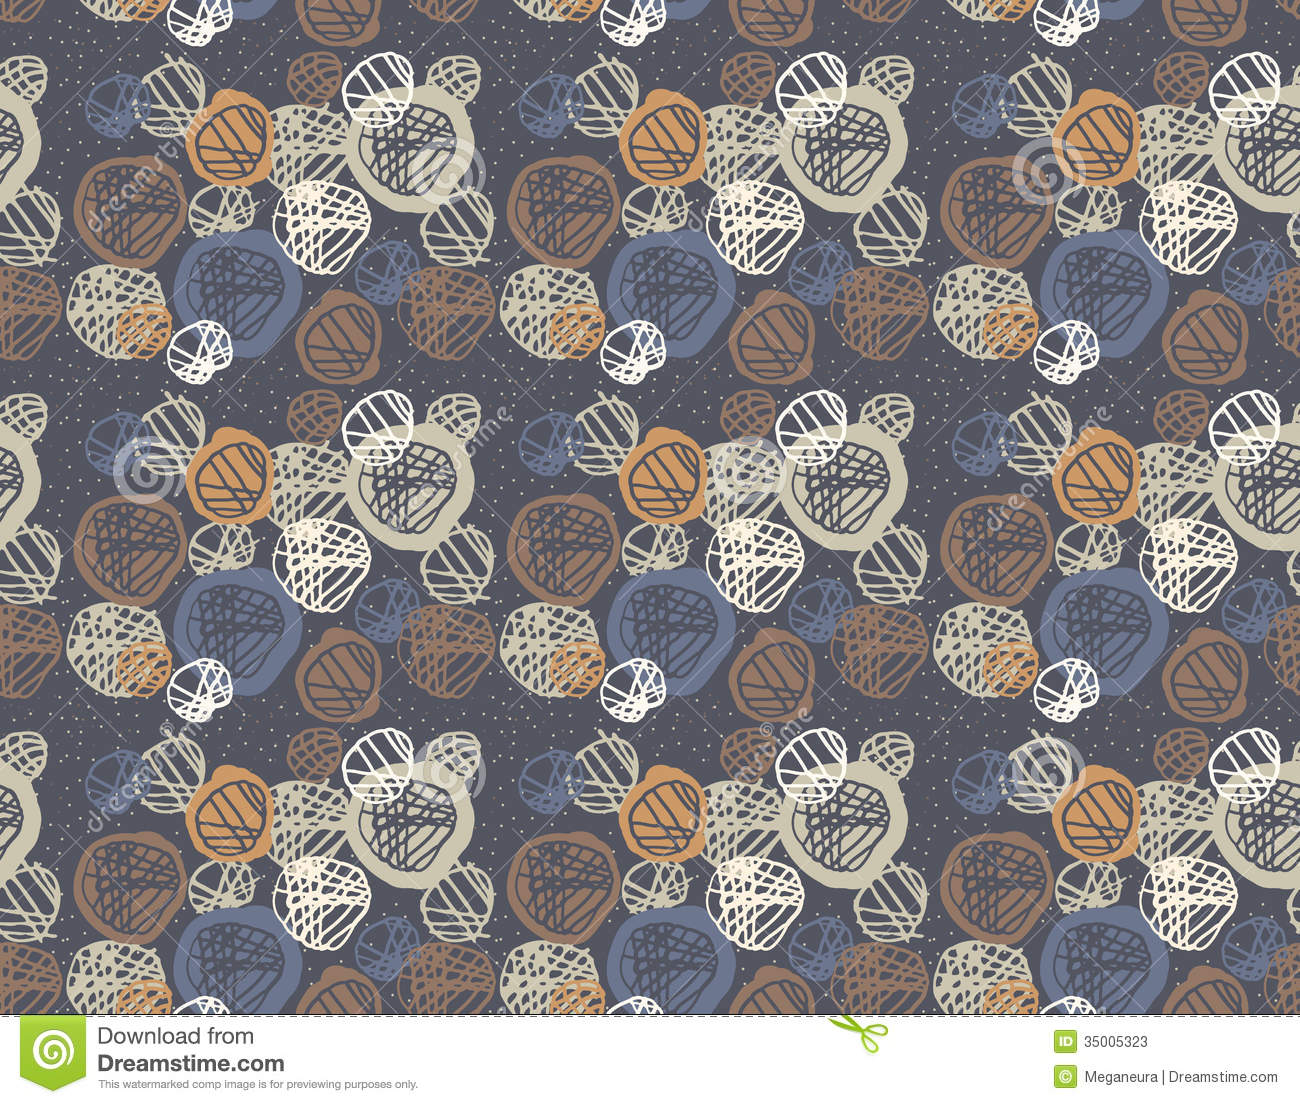 Wallpaper Doodle Cute Seamless Pattern Of Simple Geometry Retro Style